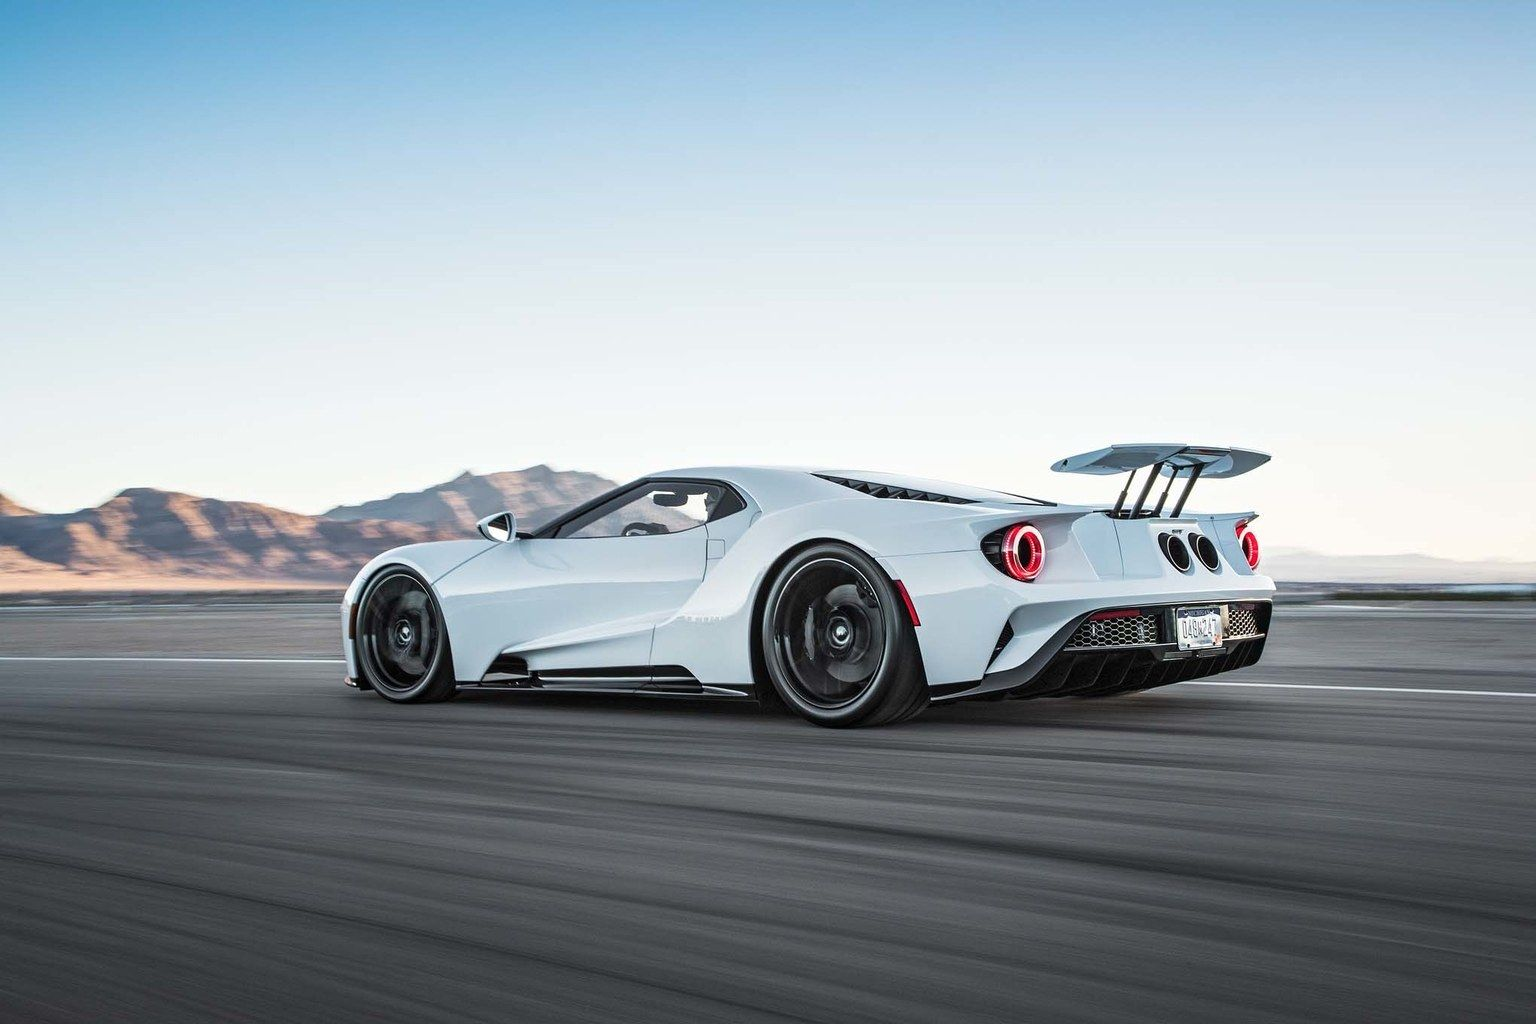 Ford S Design Director Explains The Secrets Behind The 2017 Ford Gt Supercar Ford Gt Super